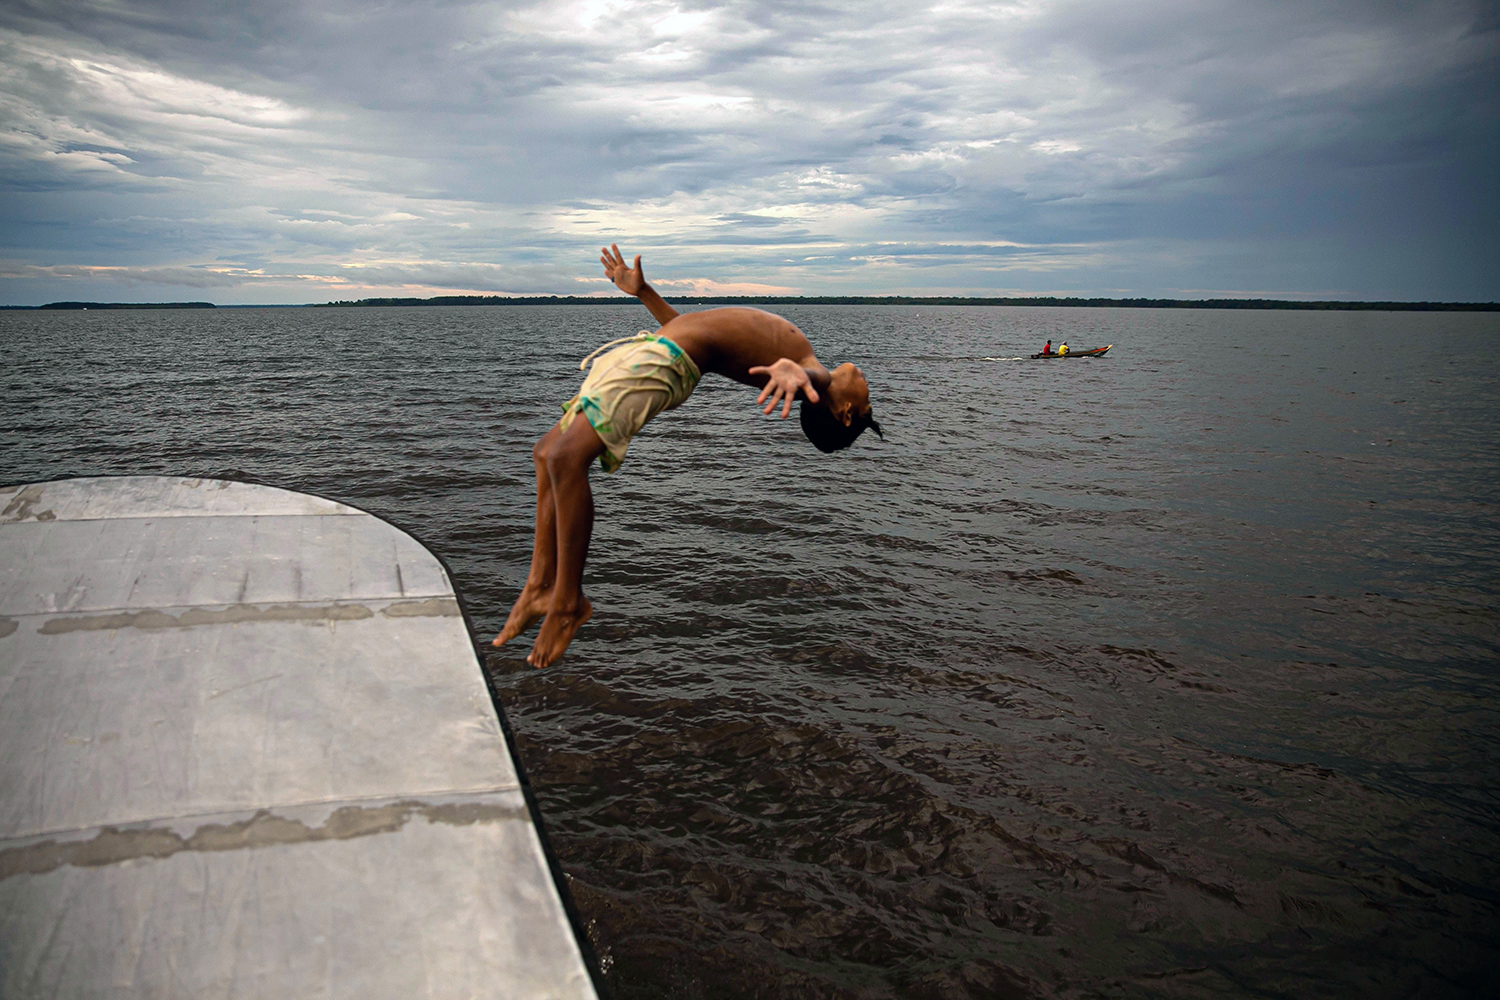 A child jumps into the water at Melgaco Bay, southwest of Marajó Island in Brazil, on May 29. TARSO SARRAF/AFP via Getty Images